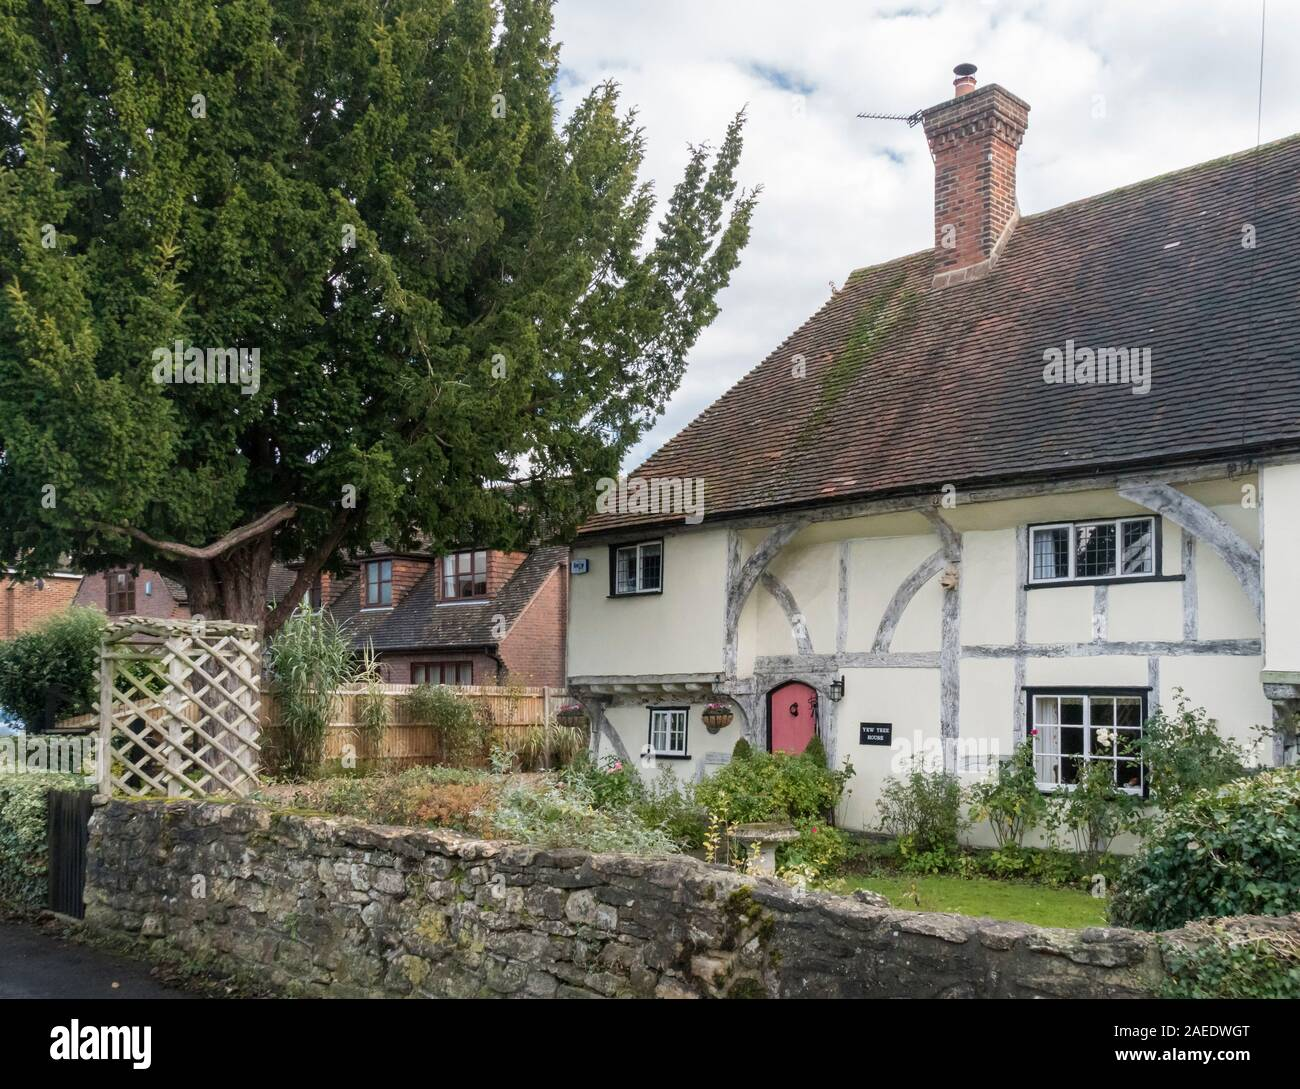 An ancient timber framed cottage and garden in the village of Weavering, Kent, UK Stock Photo